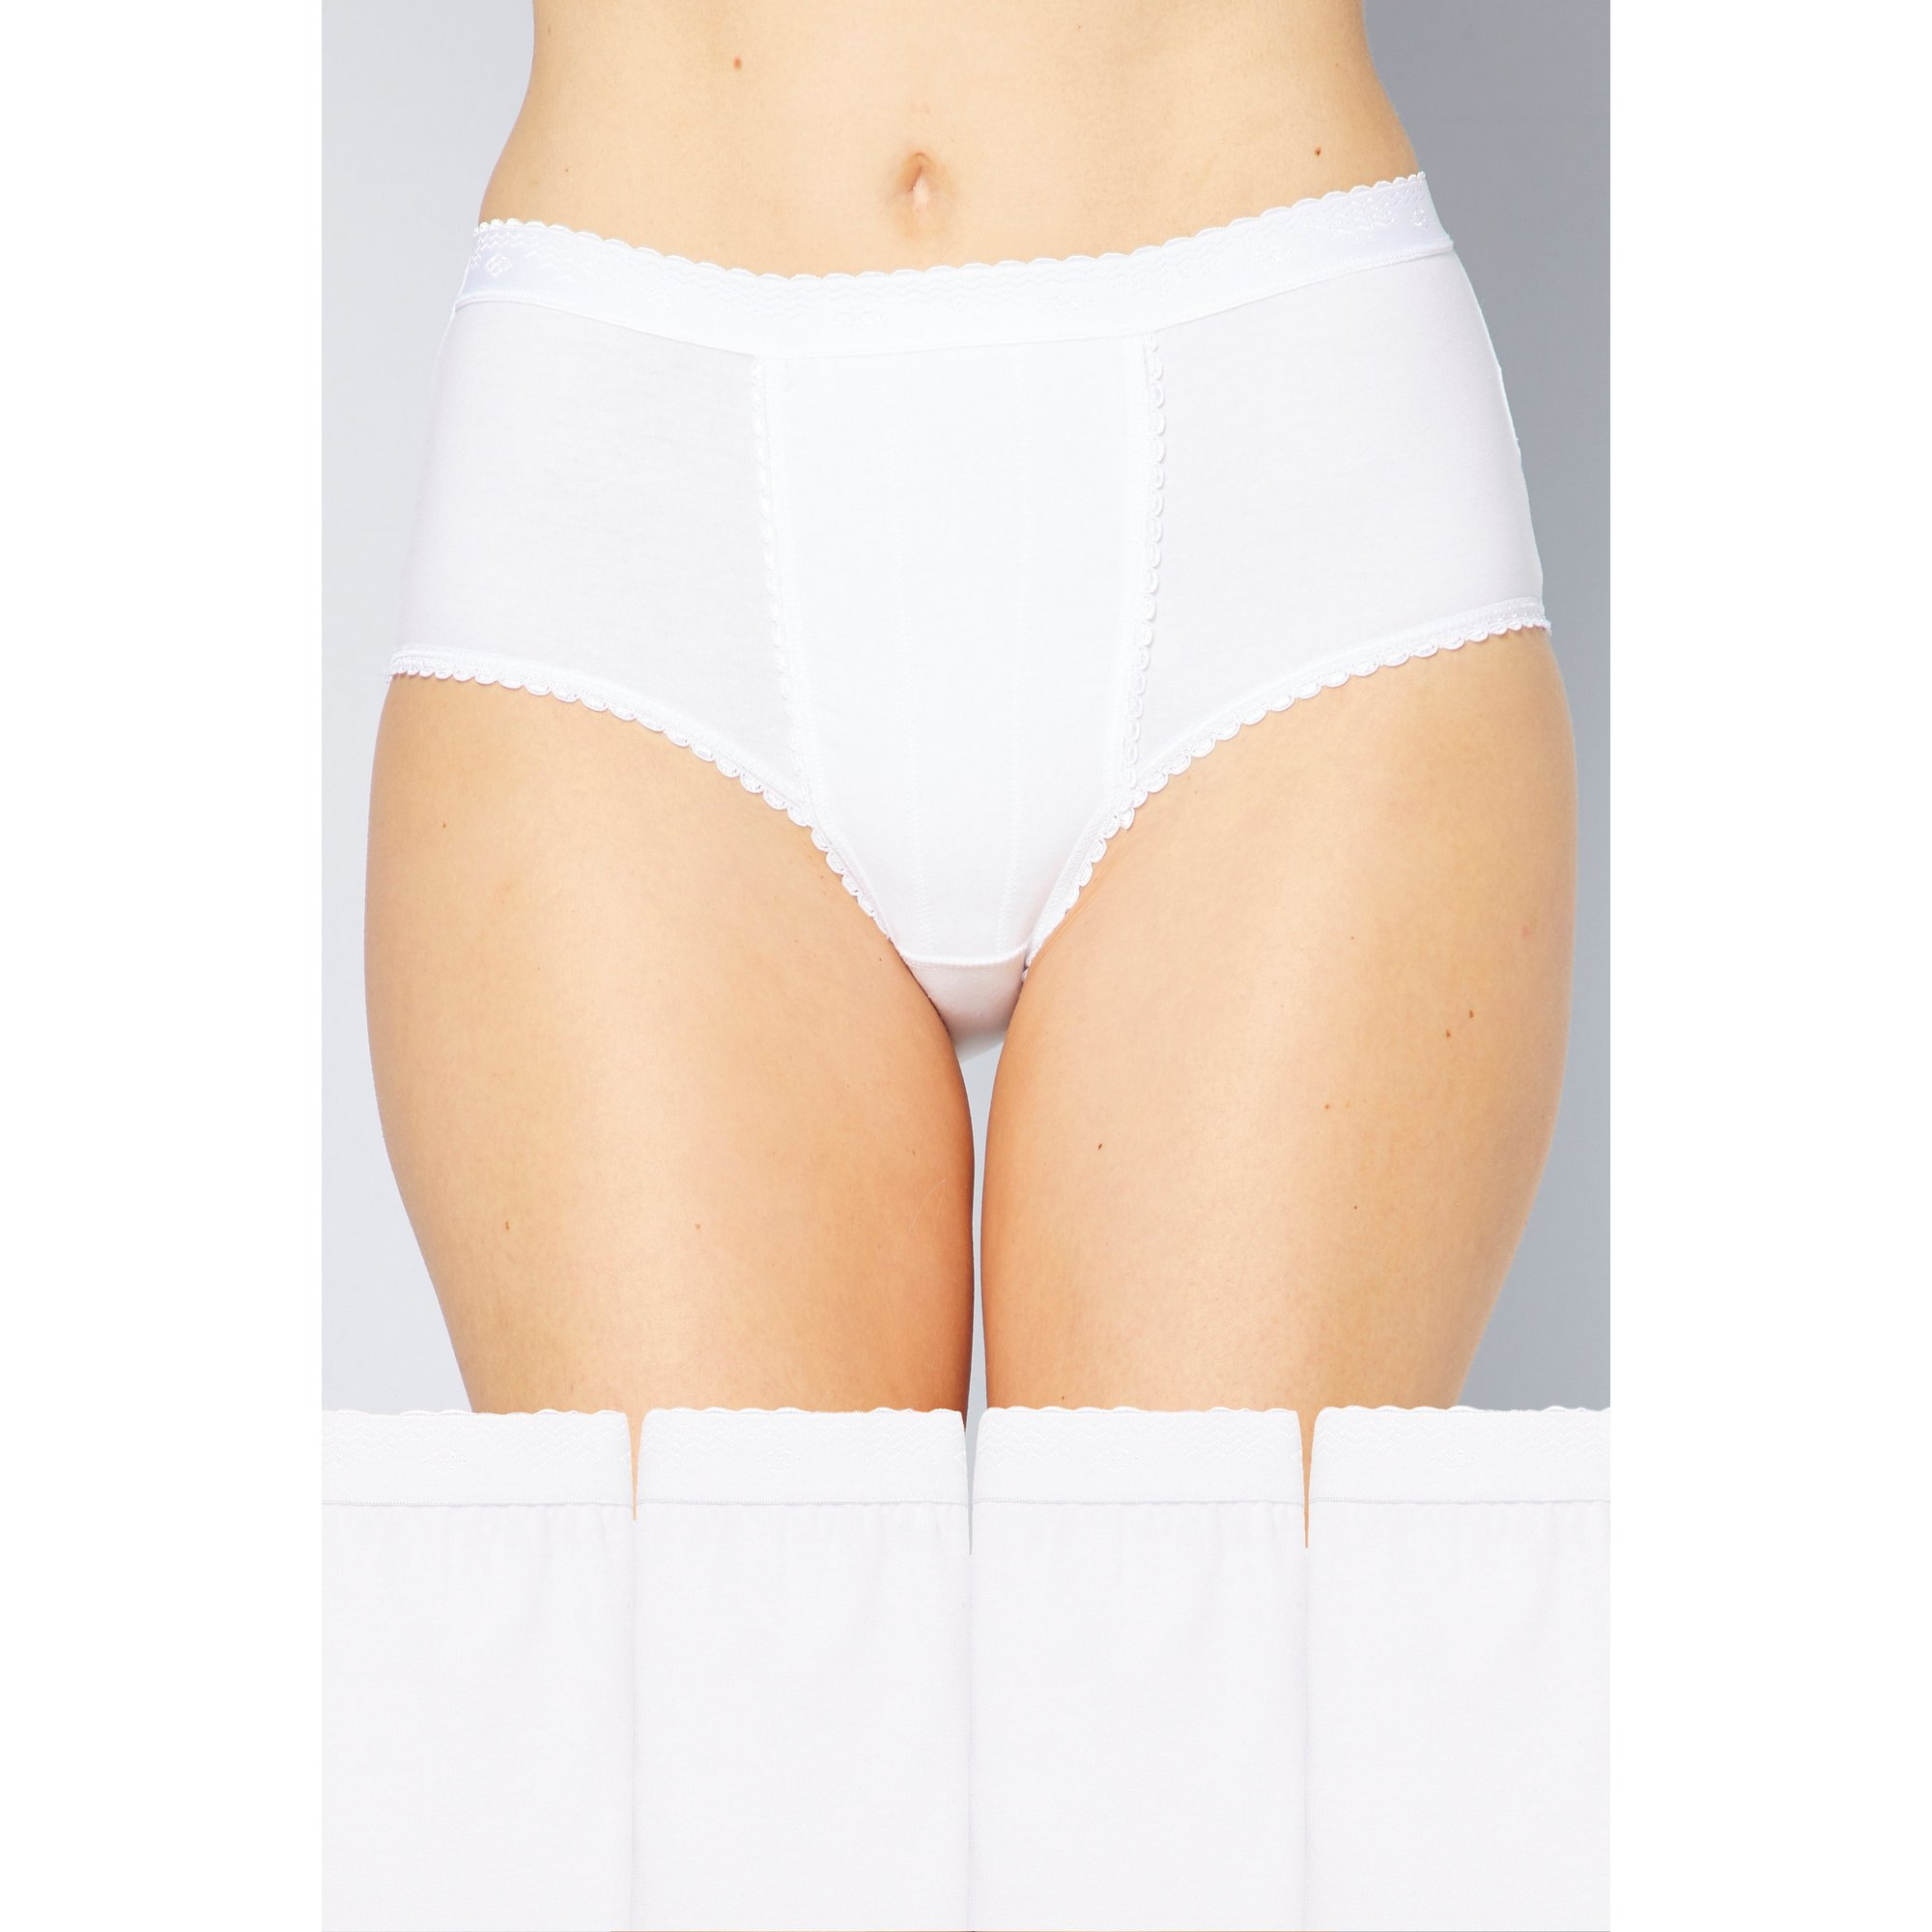 Image of Pack of 4 Plain High Leg Control Briefs